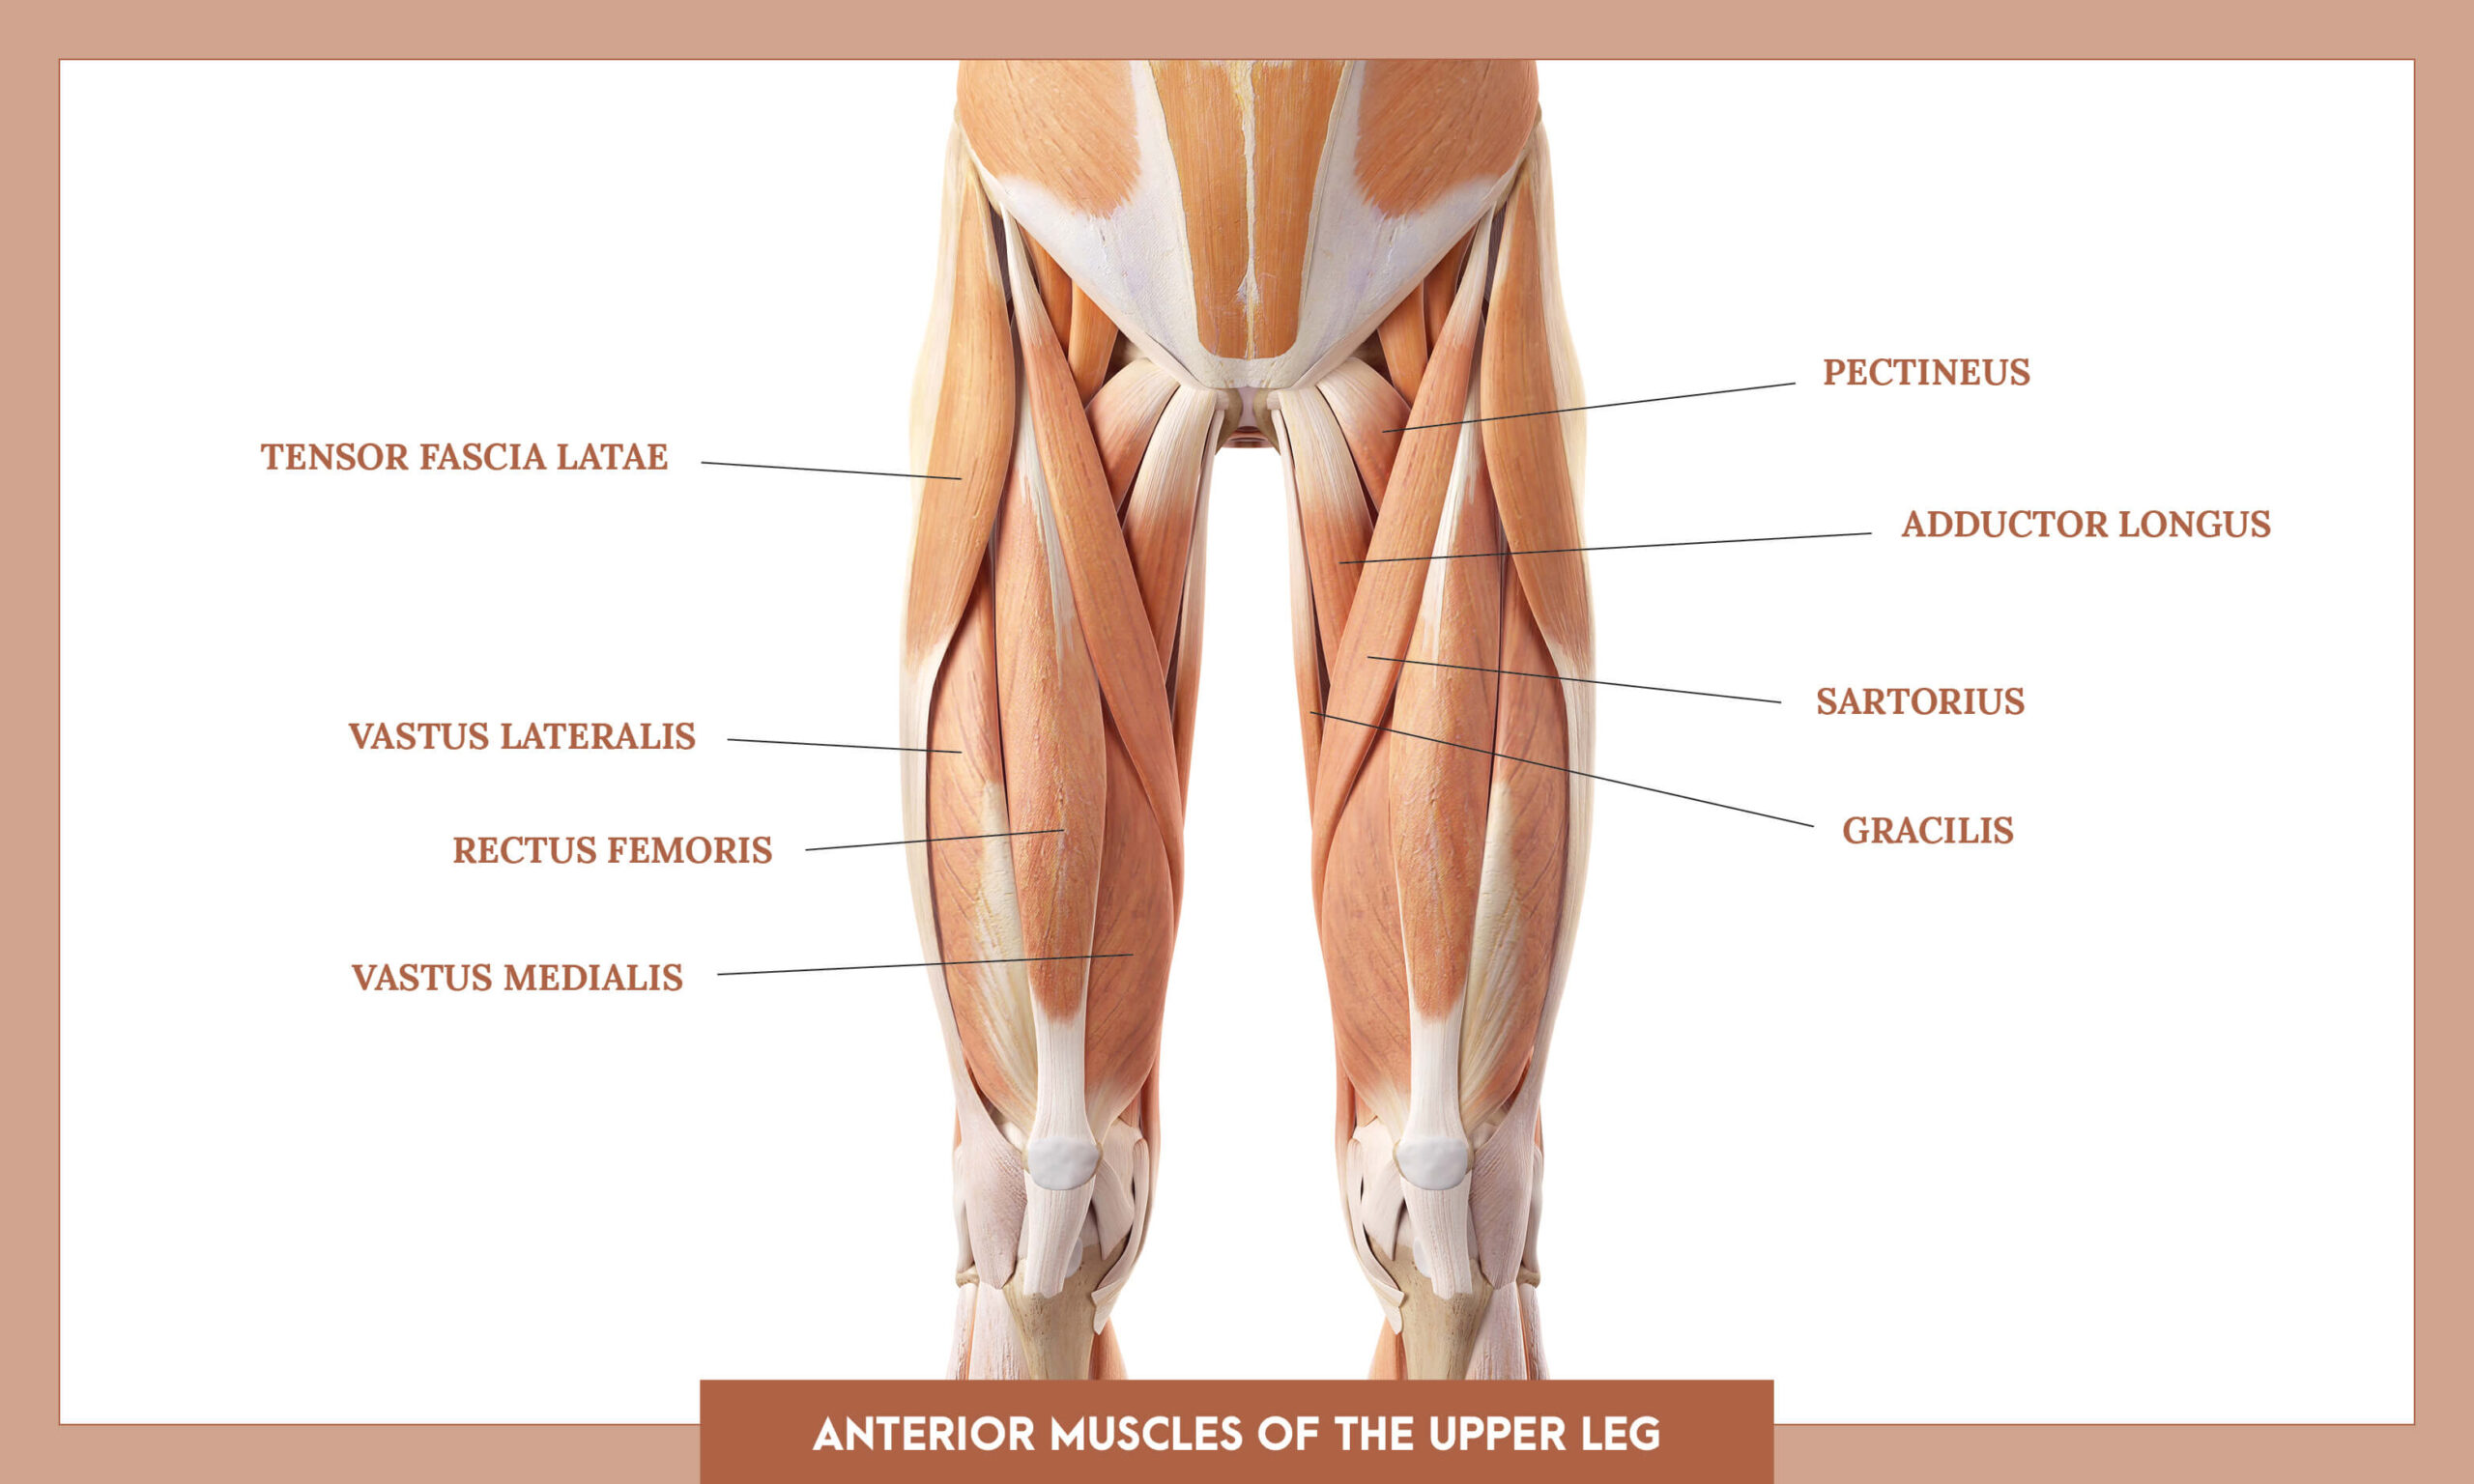 Muscles of thee Lower Limb - Anterior muscles of the upper leg overview